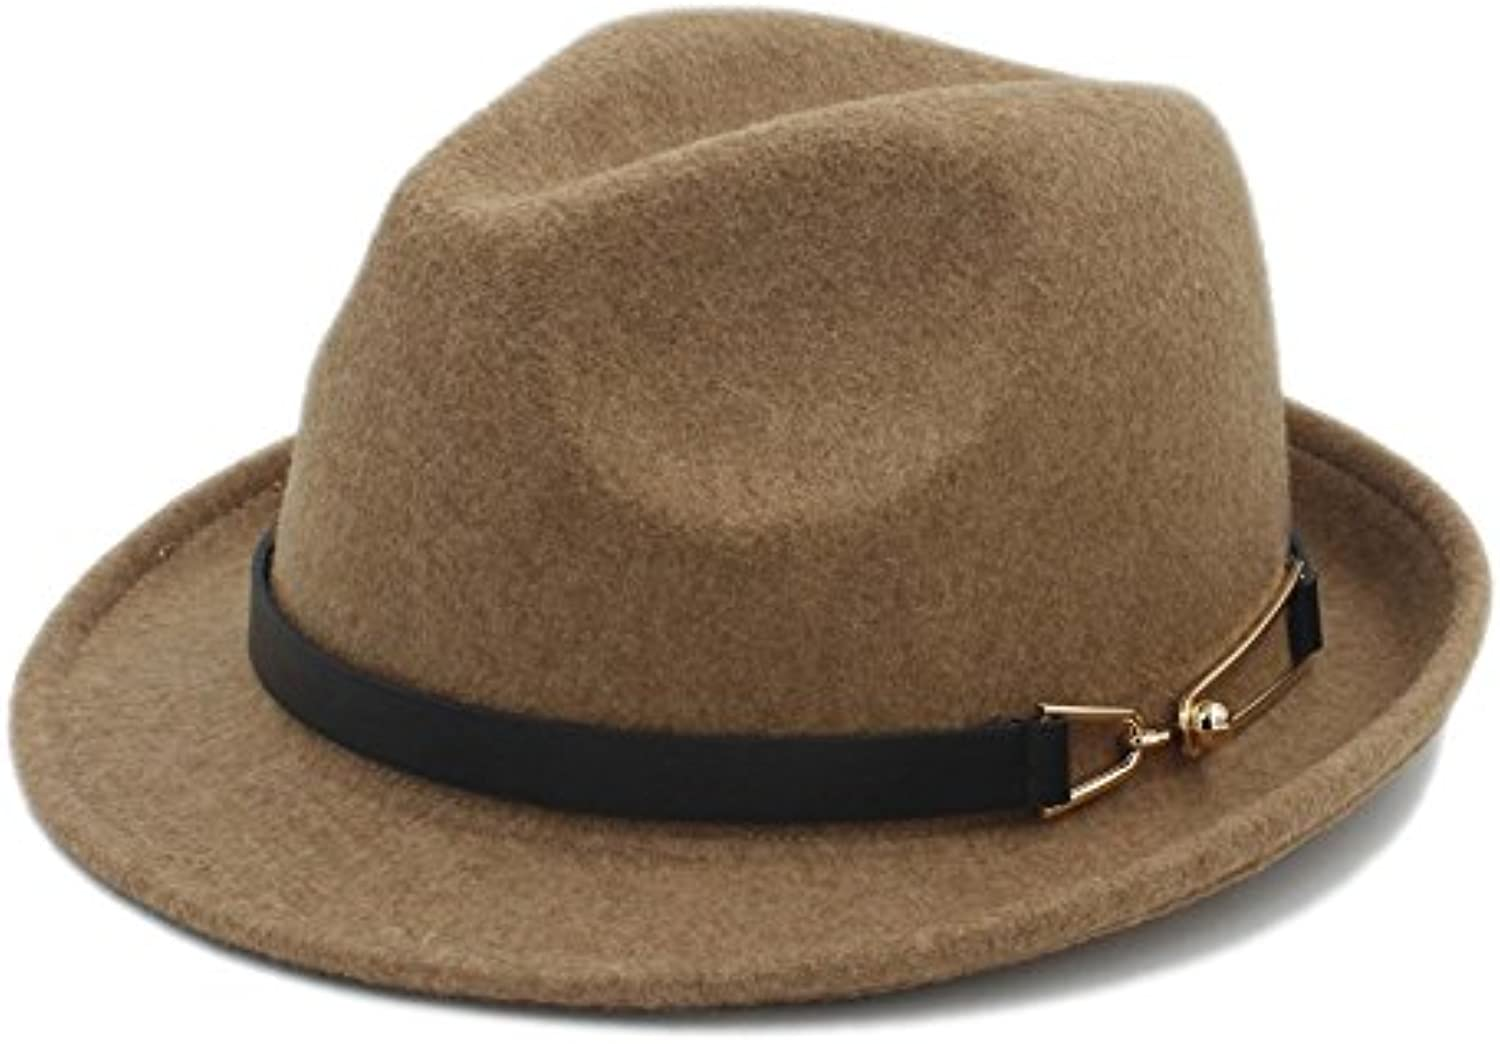 HYF Cappello in Feltro per Donna Chapeau Femme Cappello in Lady Fedora  Gentleman Sombrero cap Elegante Lady in Trilby... Parent 7bba24 9c0fbb5a5121